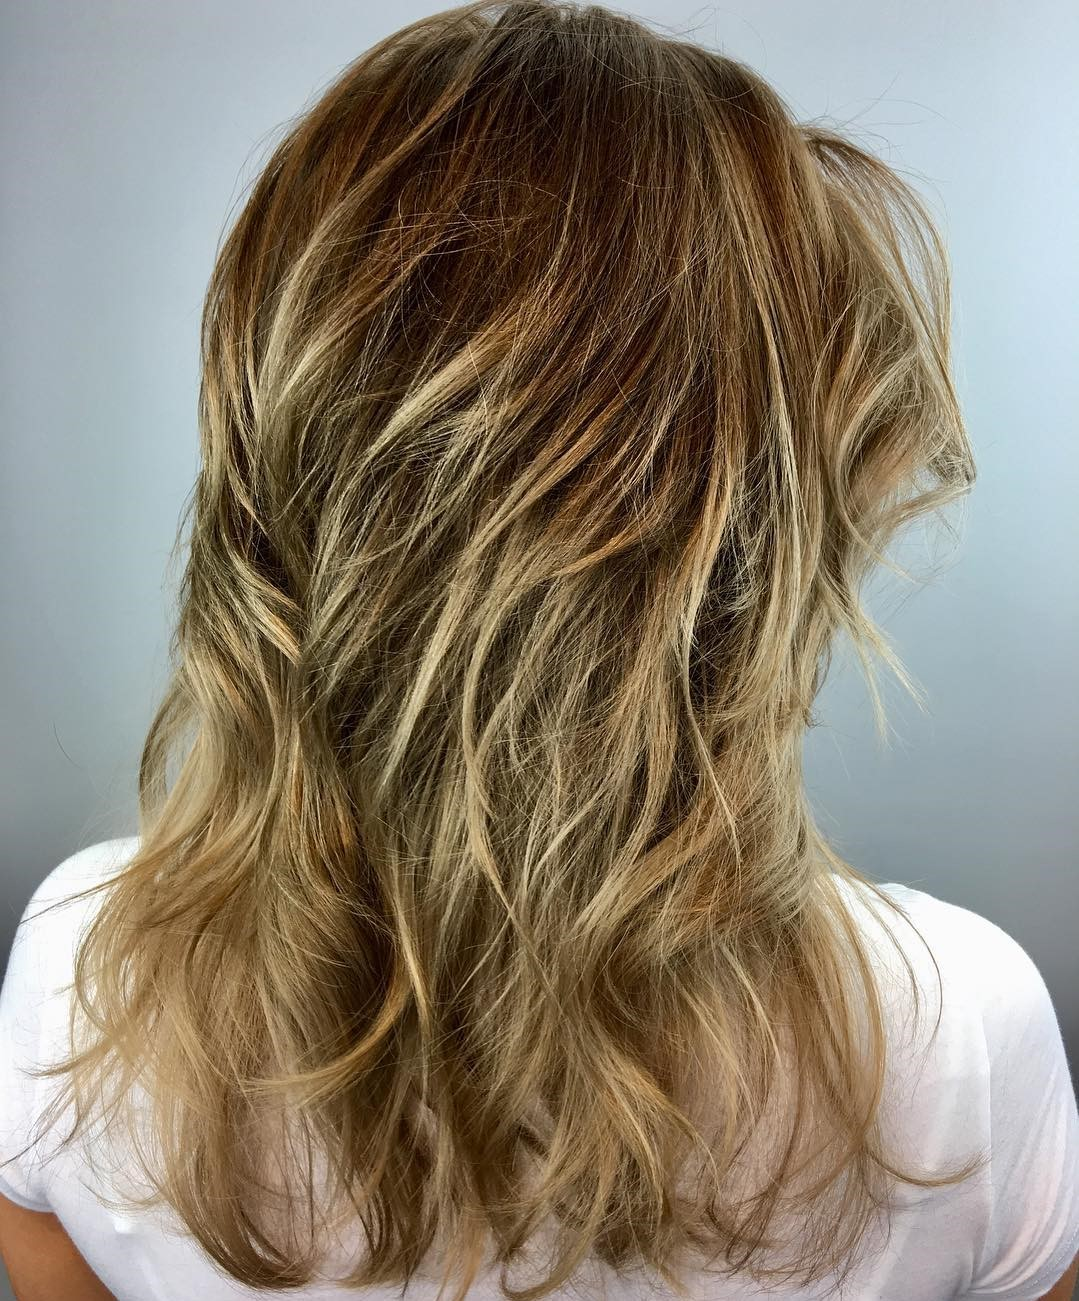 Medium Layered Haircut for Fine Hair